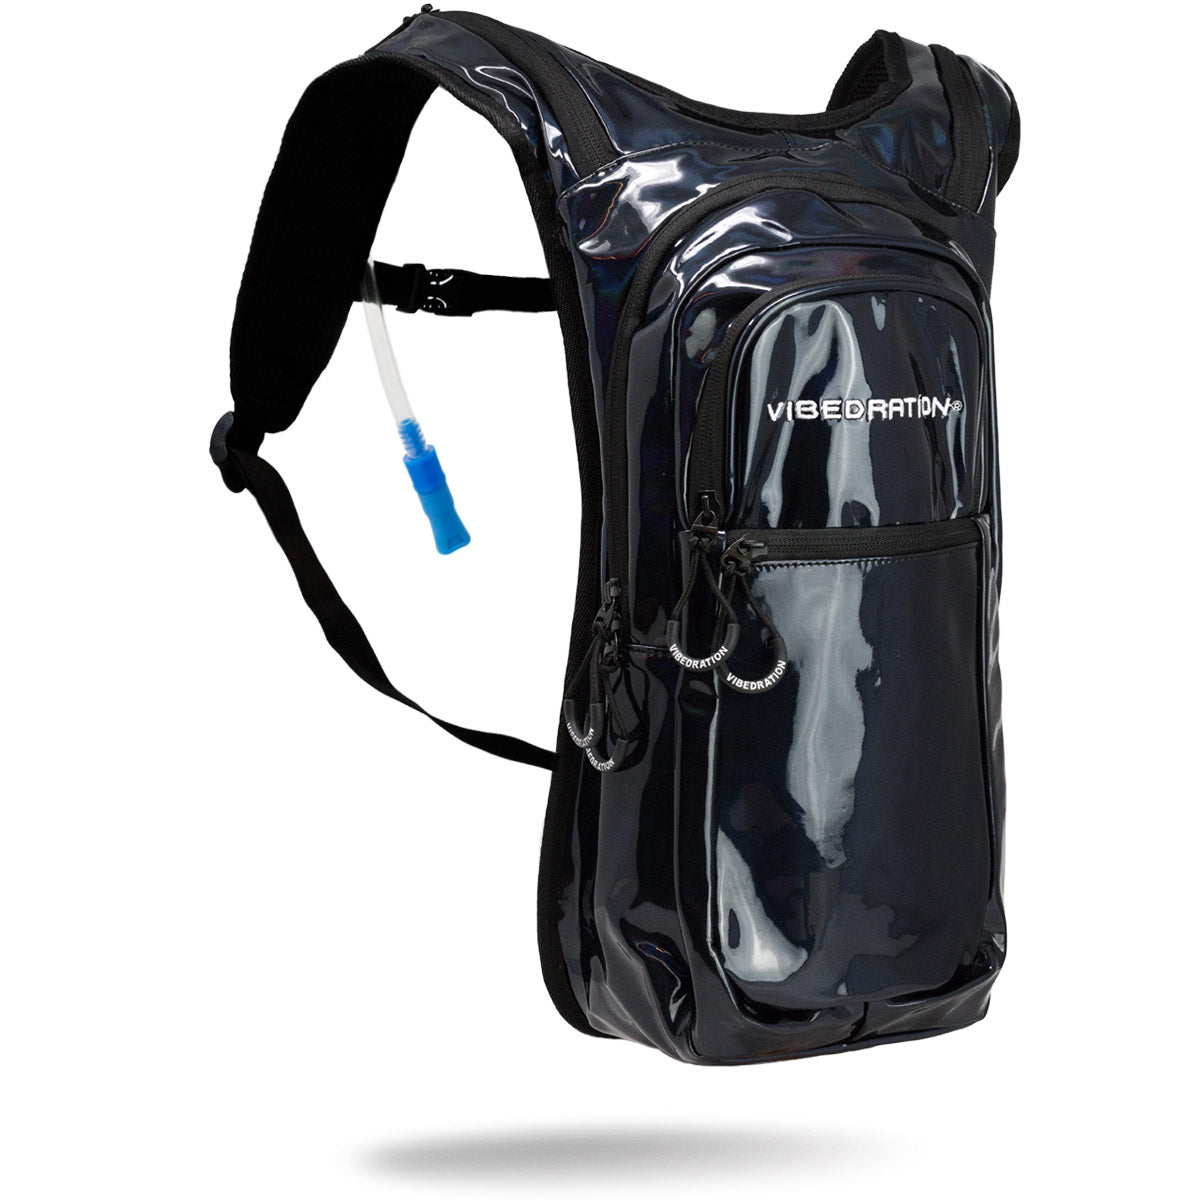 Black holographic hydration pack for raves